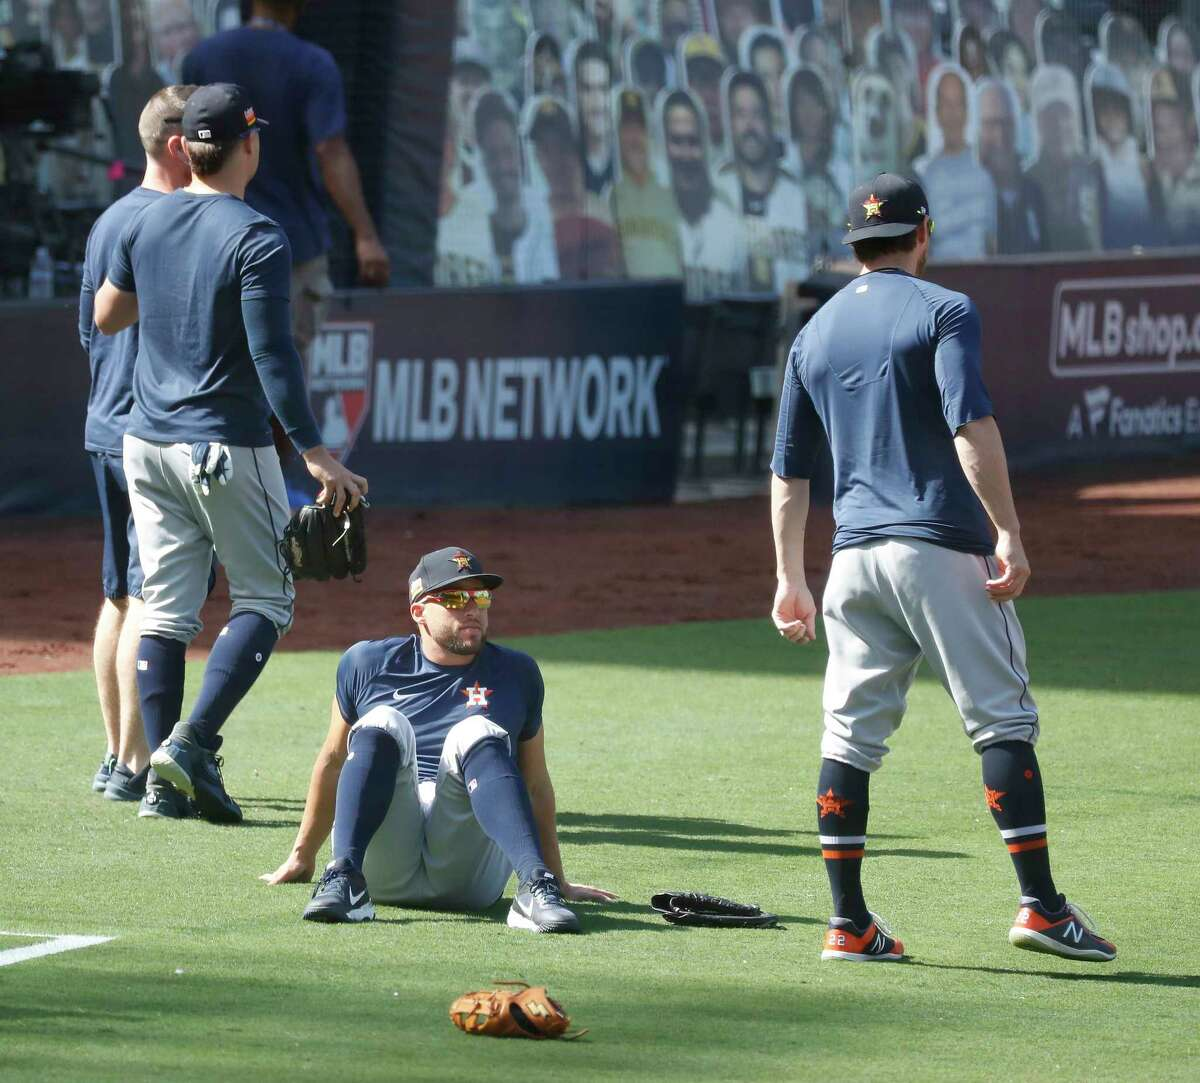 Houston Astros George Springer sits on the ground during workouts at Petco Park, Saturday, October 10, 2020, in San Diego, as the Astros prepare for the 2020 American League Championship Series against the Tampa Bay Rays starting Sunday.